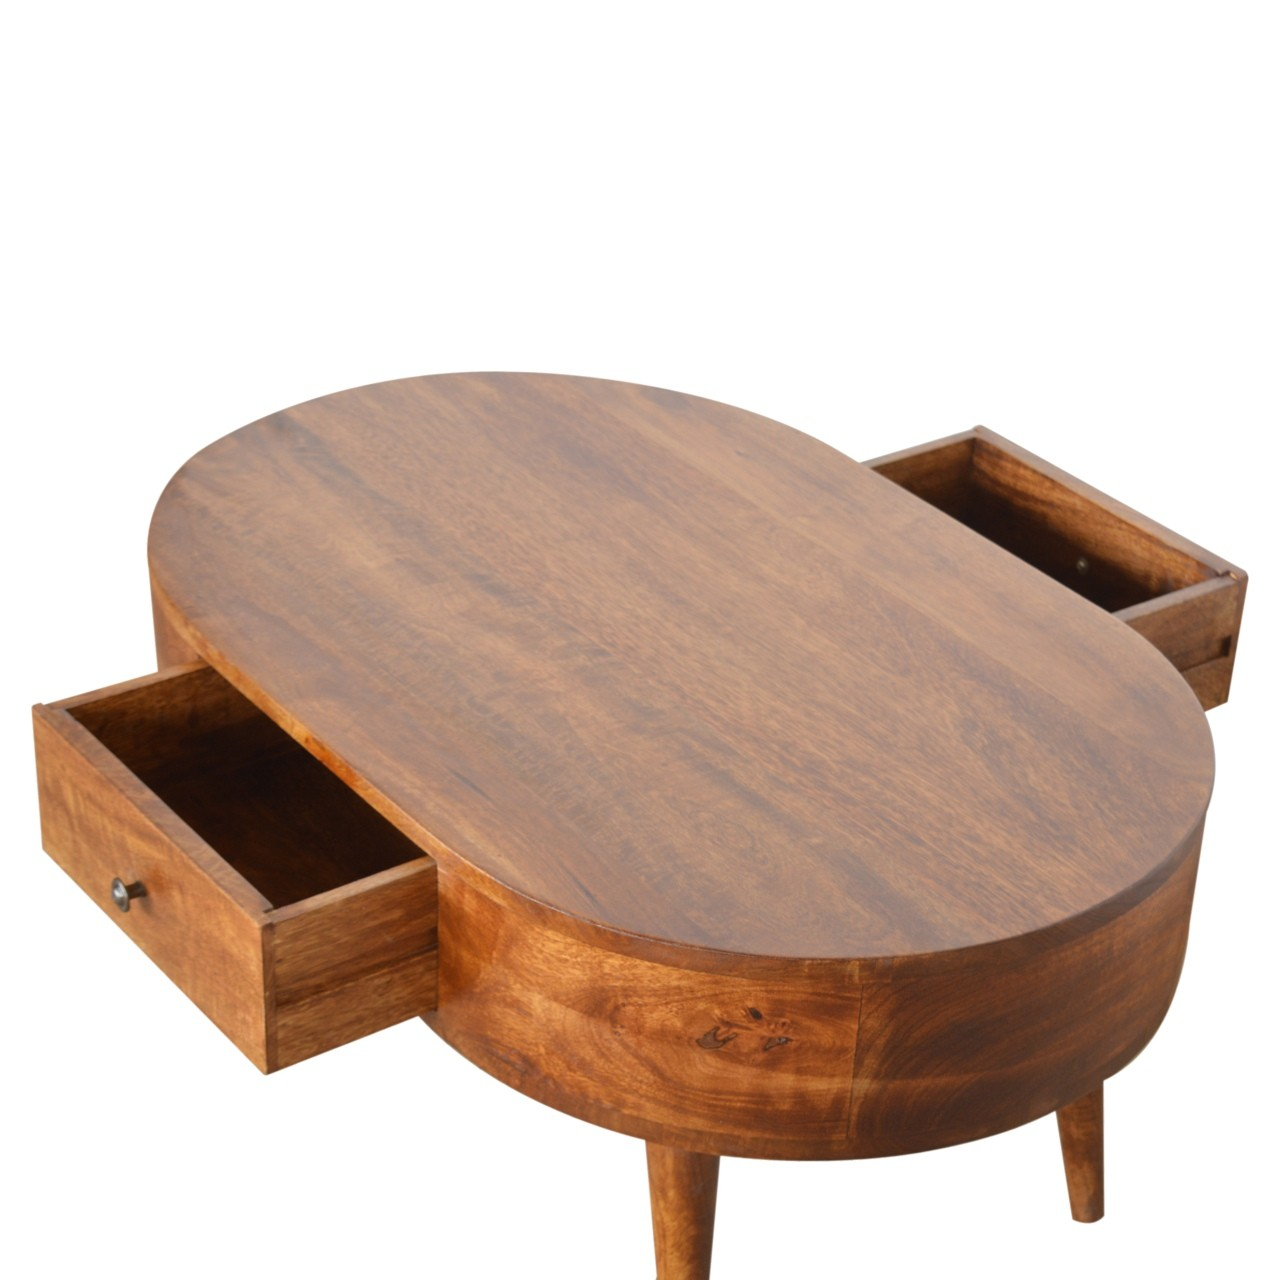 Solid Mango Chestnut Finished Wood 2 Drawer Rounded Coffee Table 1 Drawer Each Side